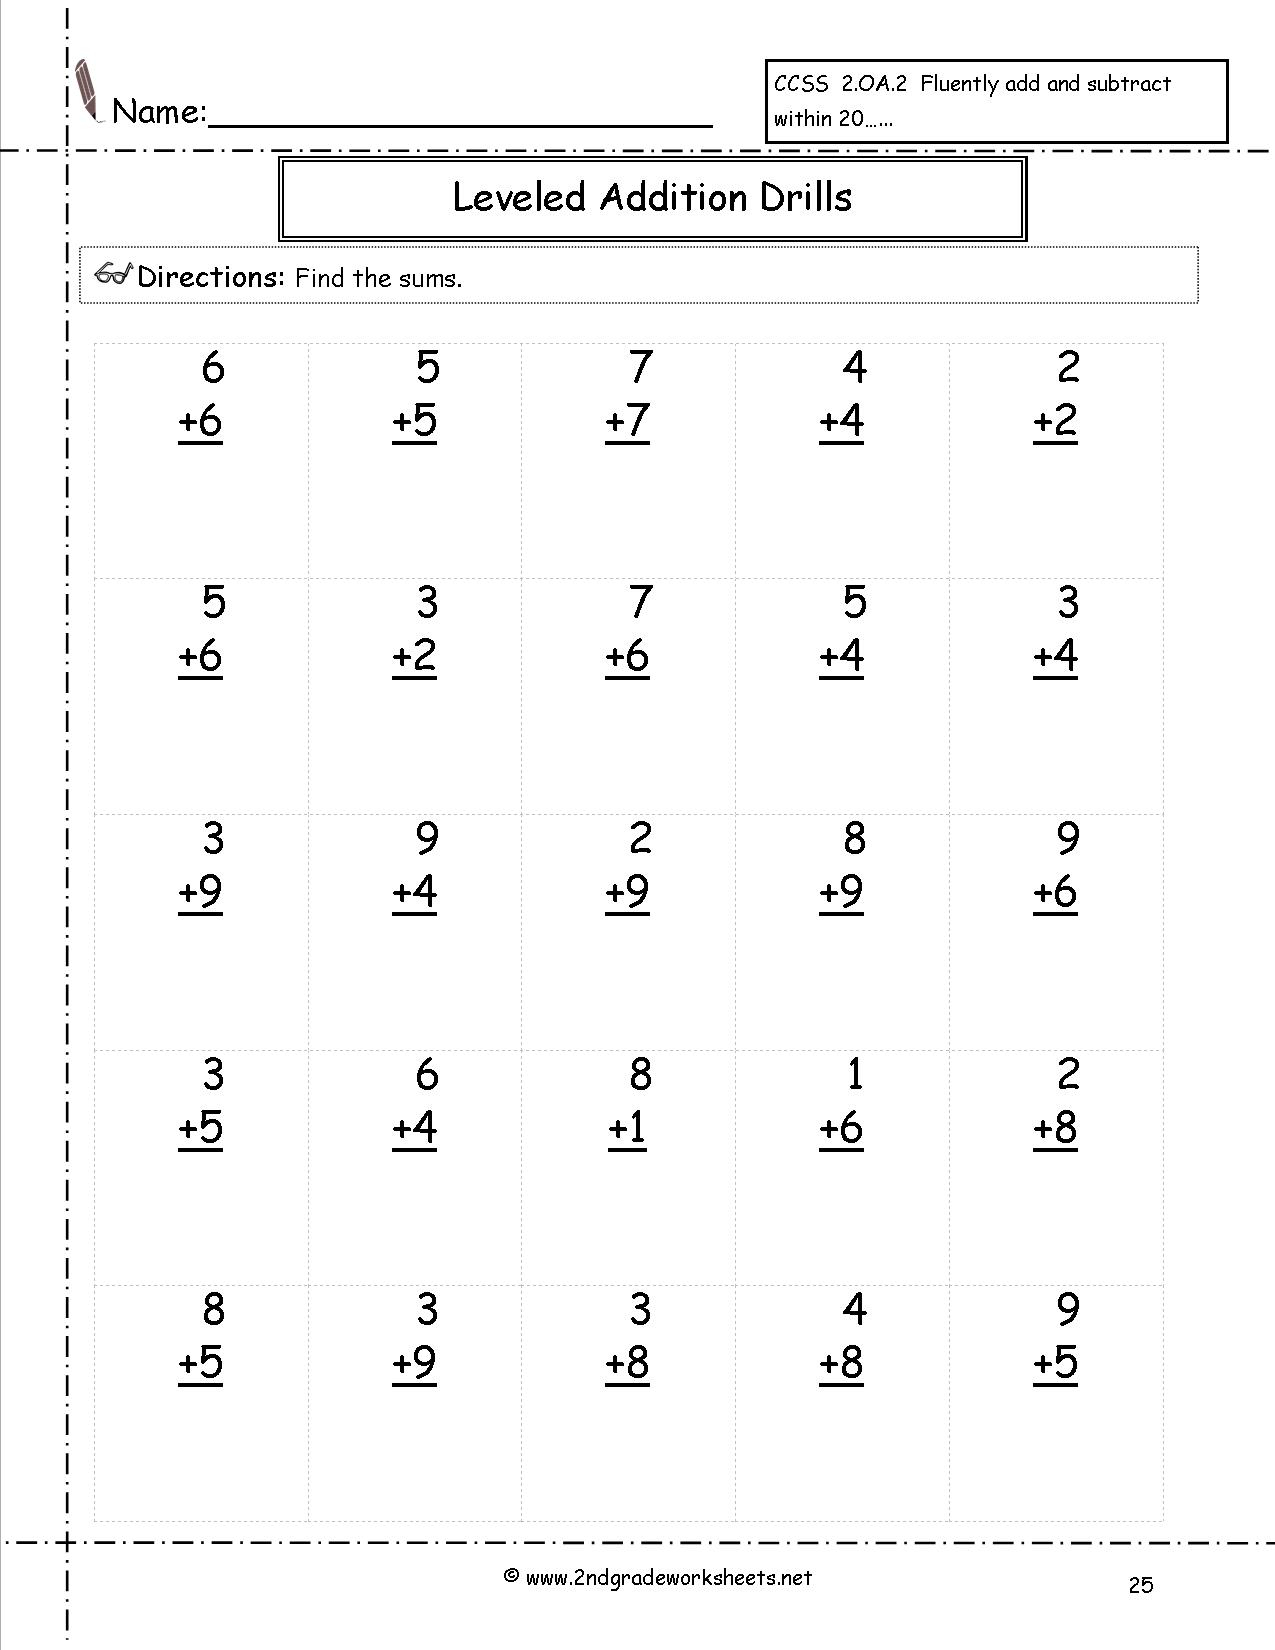 Free Math Worksheets And Printouts | Free Printable Math Worksheets For 2Nd Grade